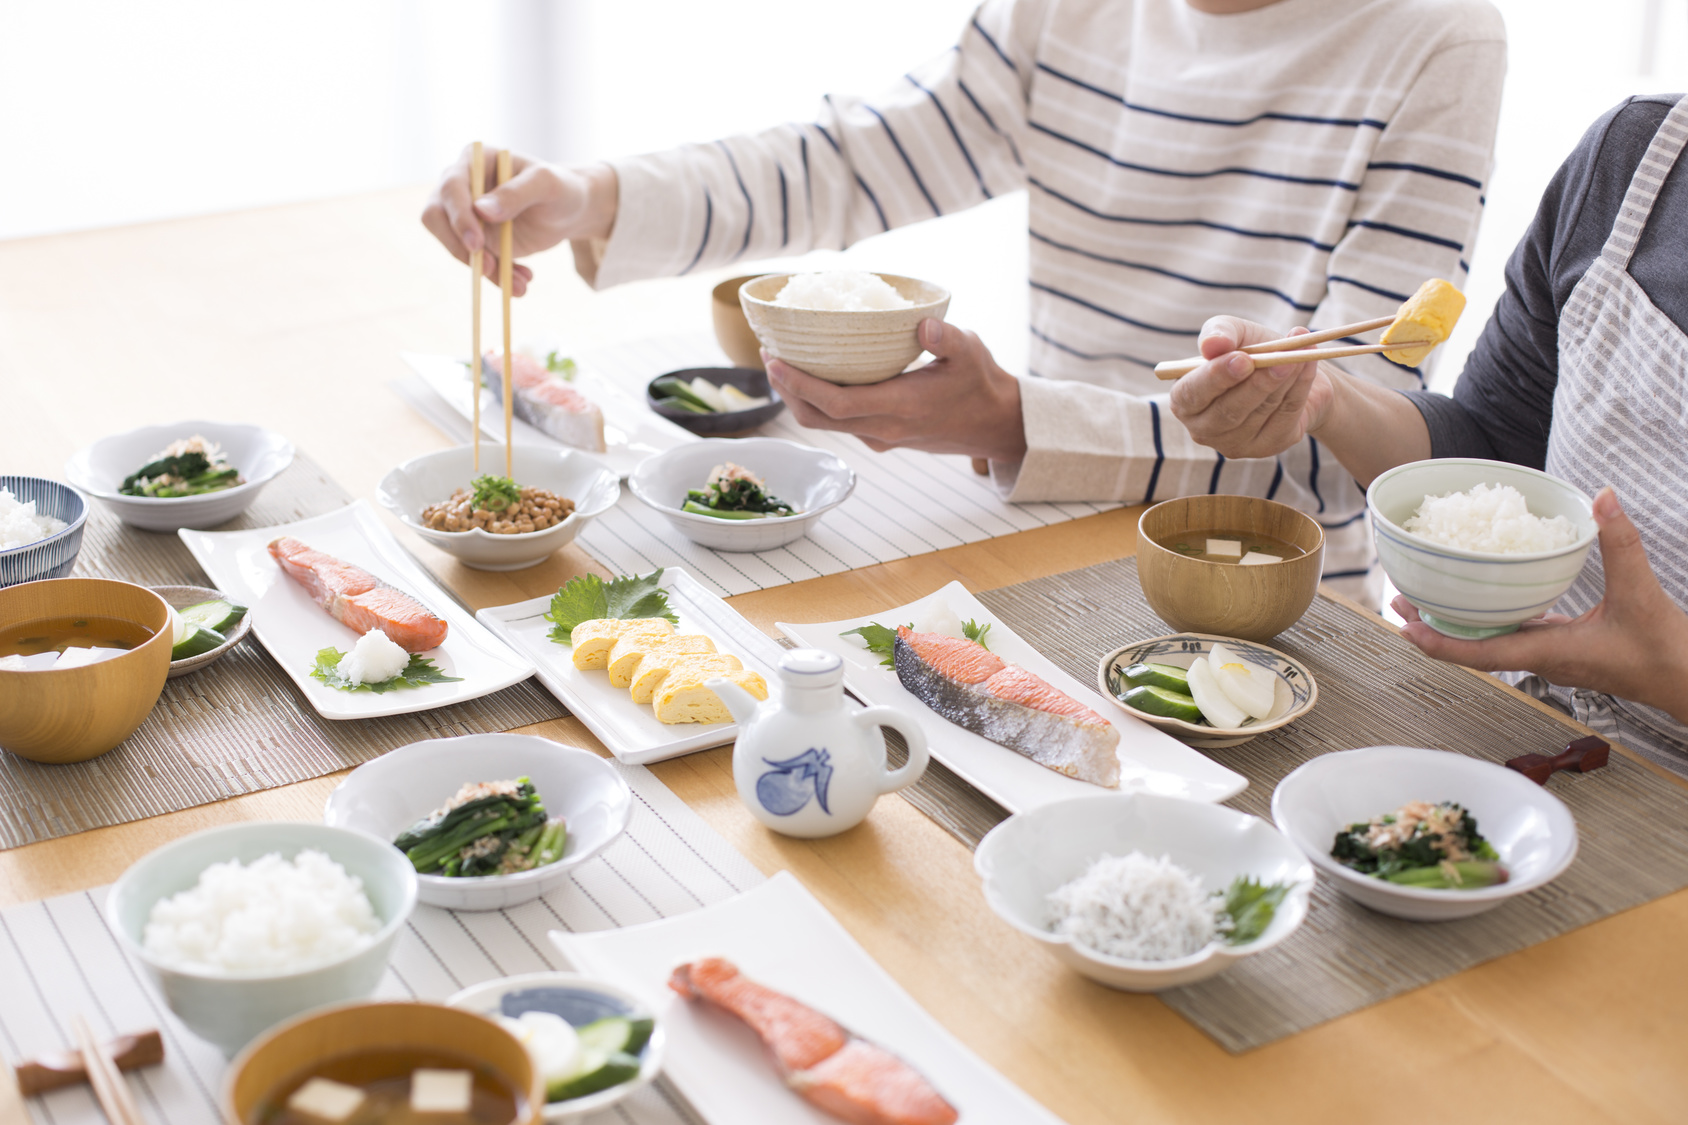 A couple eating breakfast in Japan